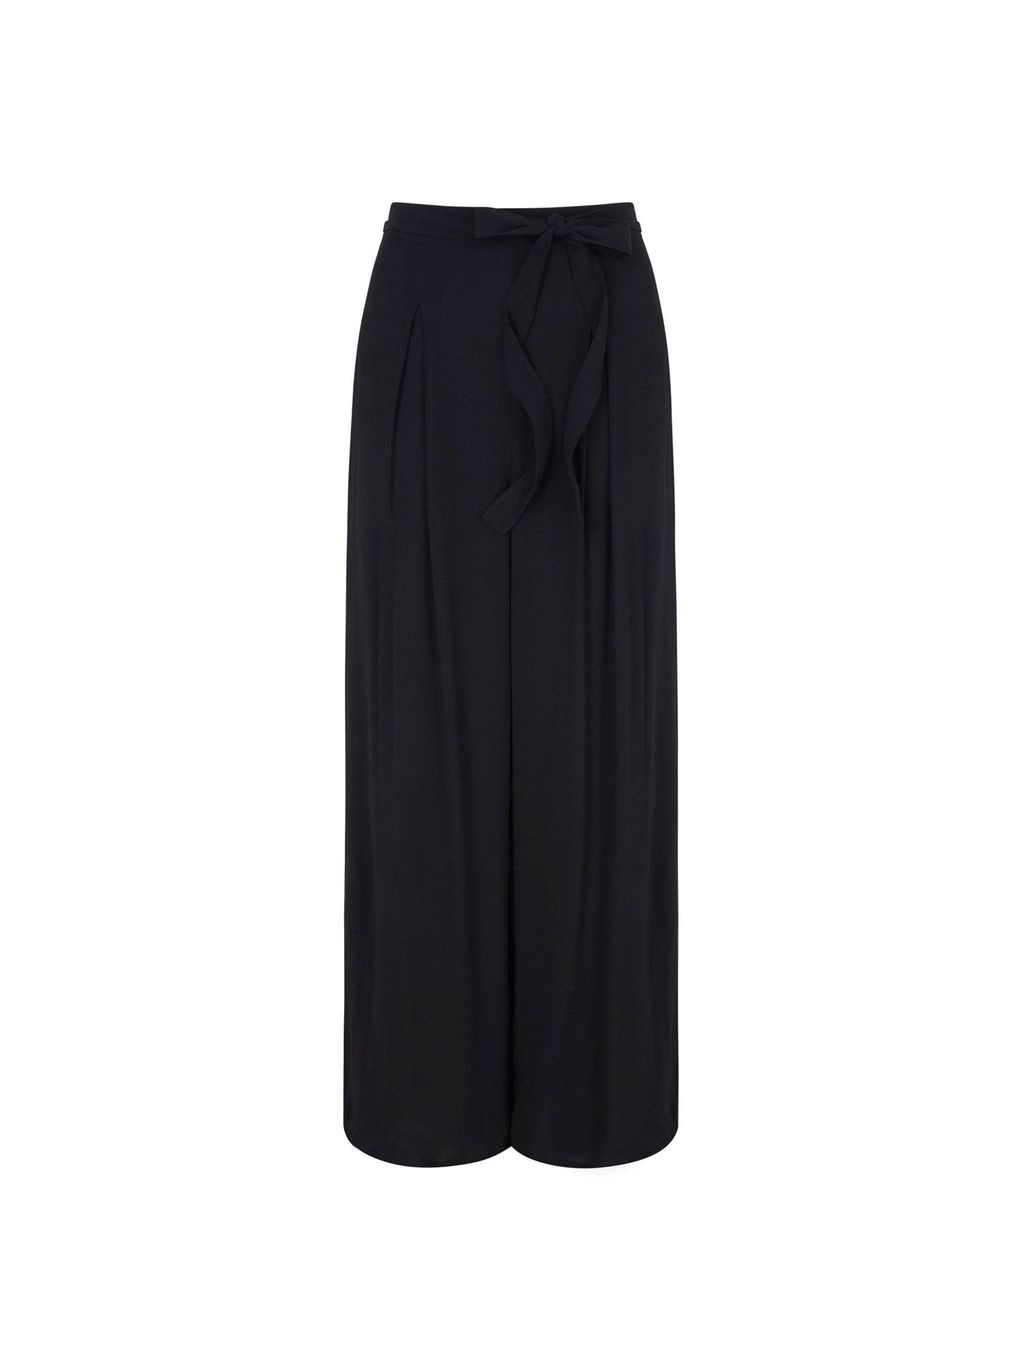 Palazzo Trousers, Black - length: standard; pattern: plain; style: palazzo; waist: high rise; waist detail: belted waist/tie at waist/drawstring; predominant colour: black; fibres: polyester/polyamide - 100%; texture group: crepes; fit: wide leg; pattern type: fabric; occasions: creative work; season: s/s 2016